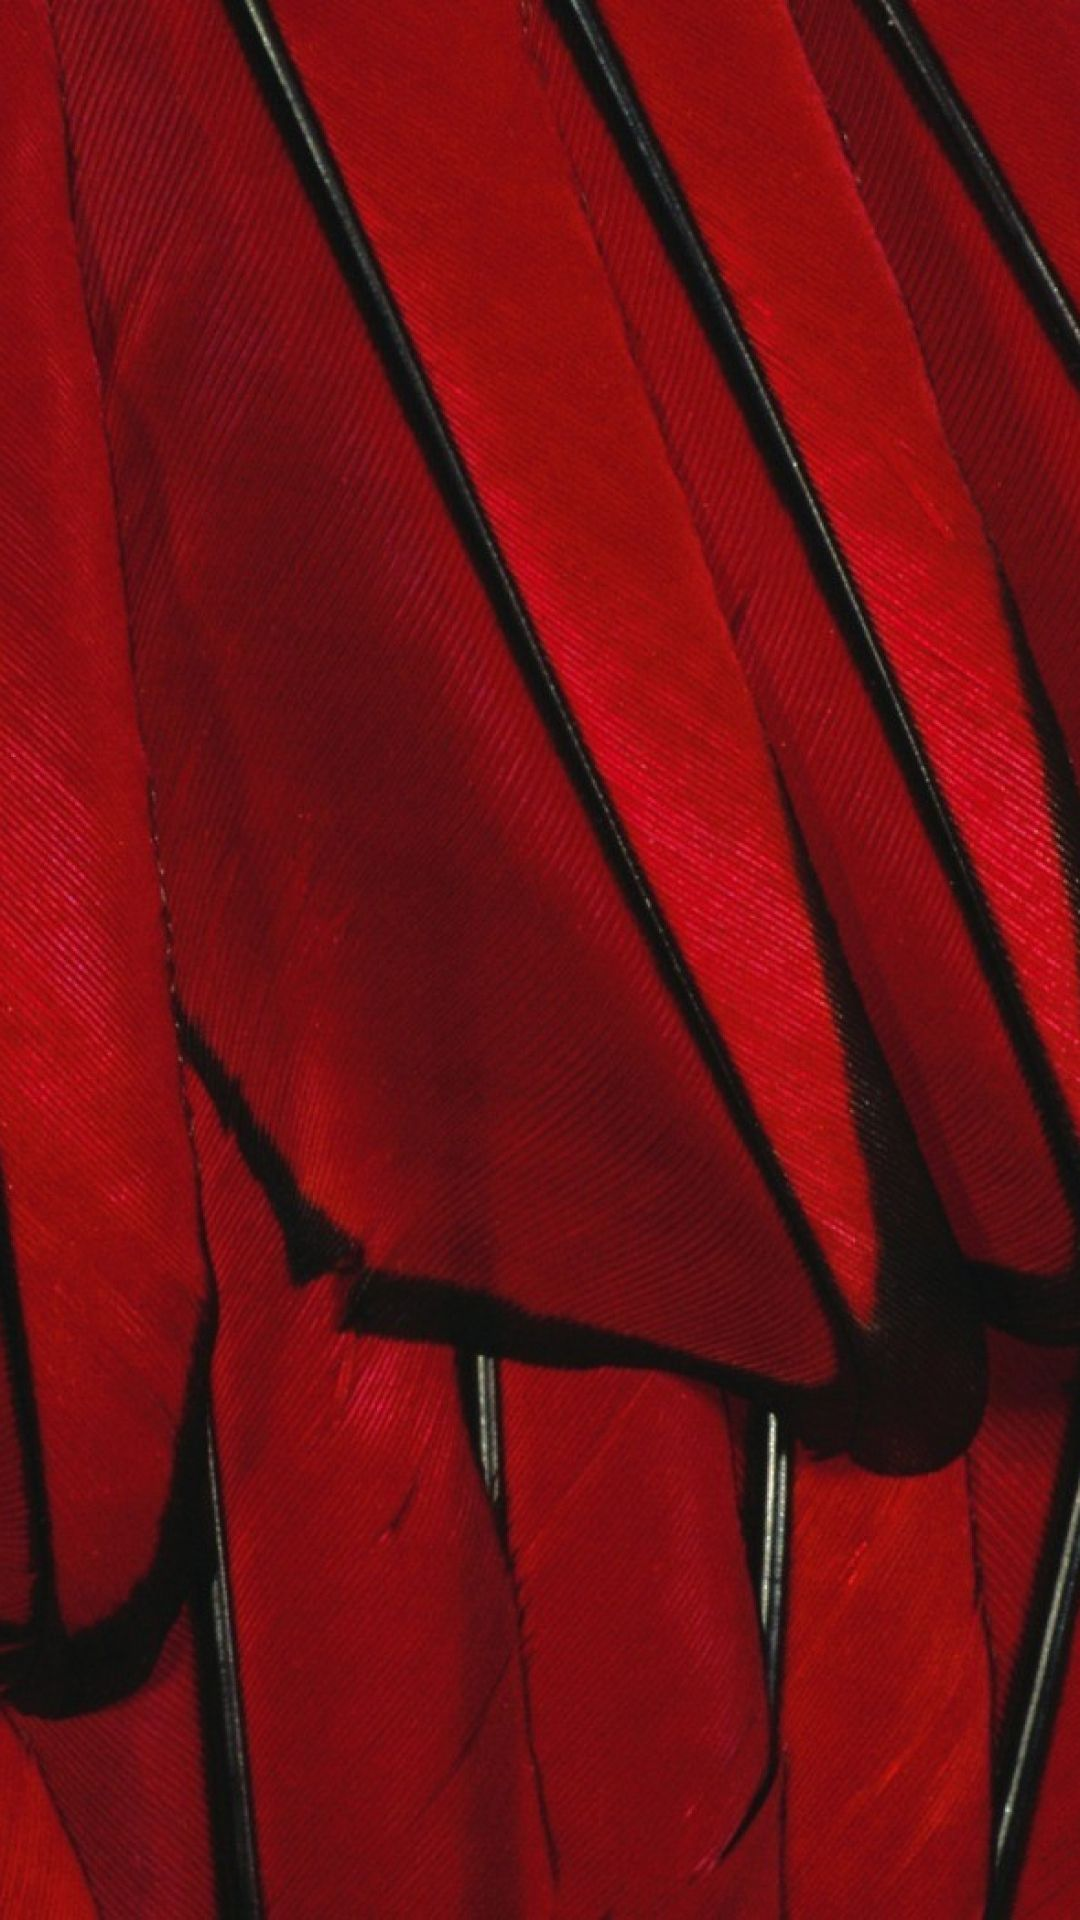 Black Red Paint Color Feather Iphone 6 Wallpaper Download Iphone Wallpapers Ipad Wallpapers One Stop Dow Red Wallpaper Red Colour Wallpaper Red Paint Colors